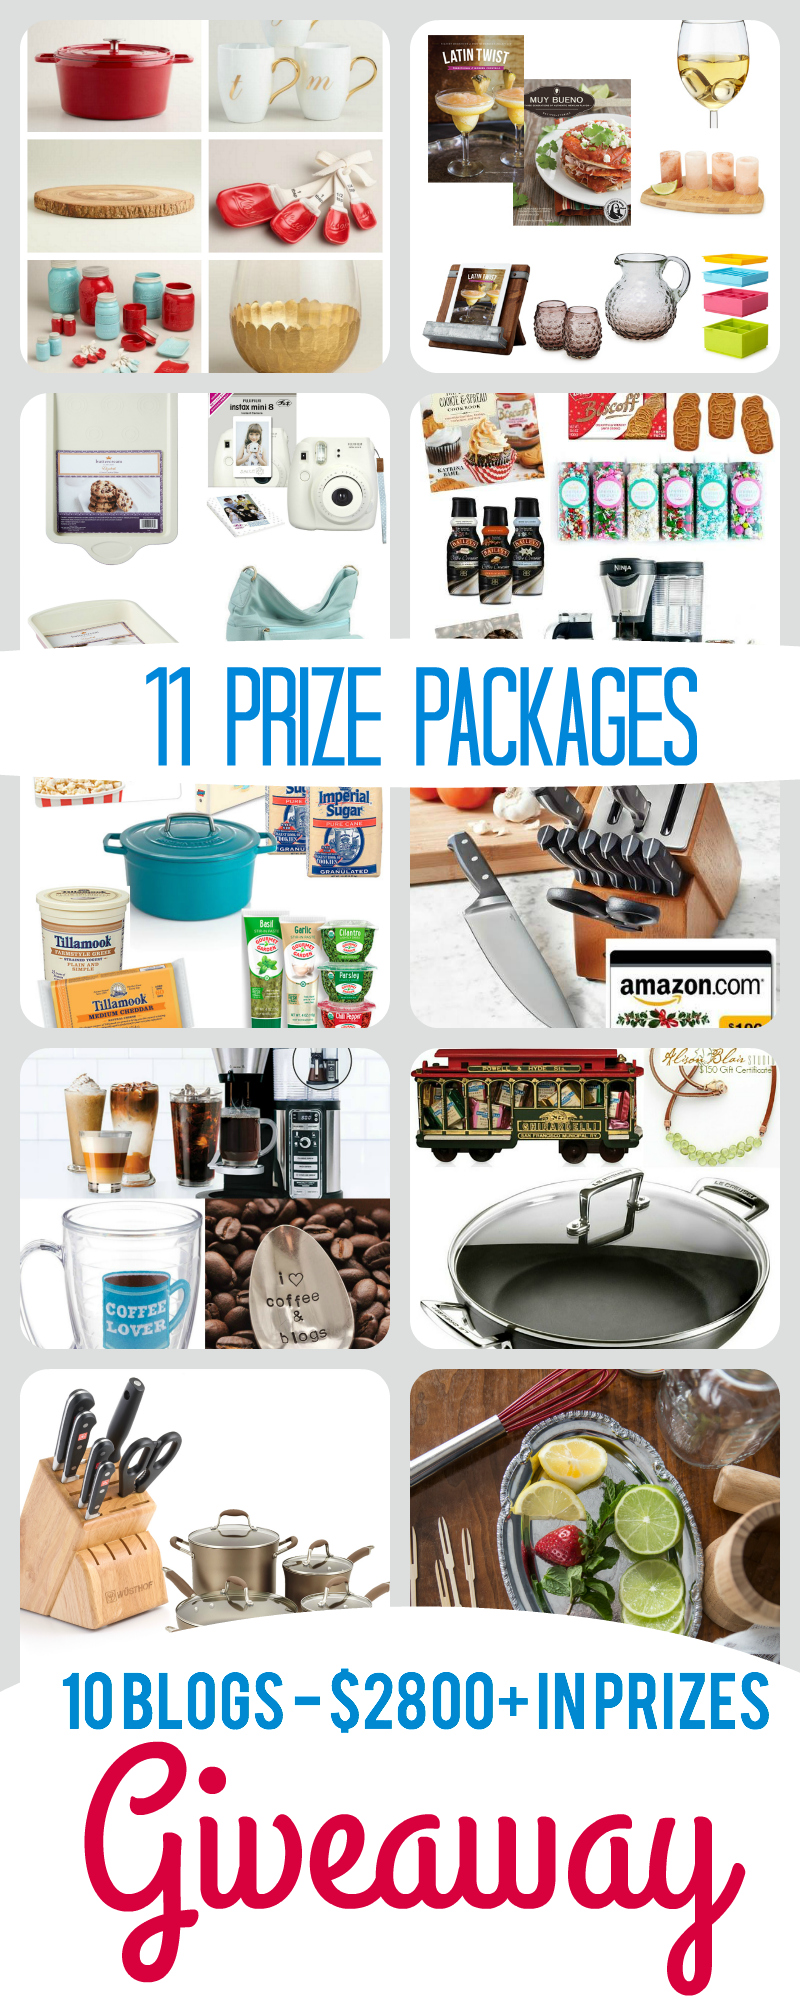 Enter to WIN over $3,000 in prizes!